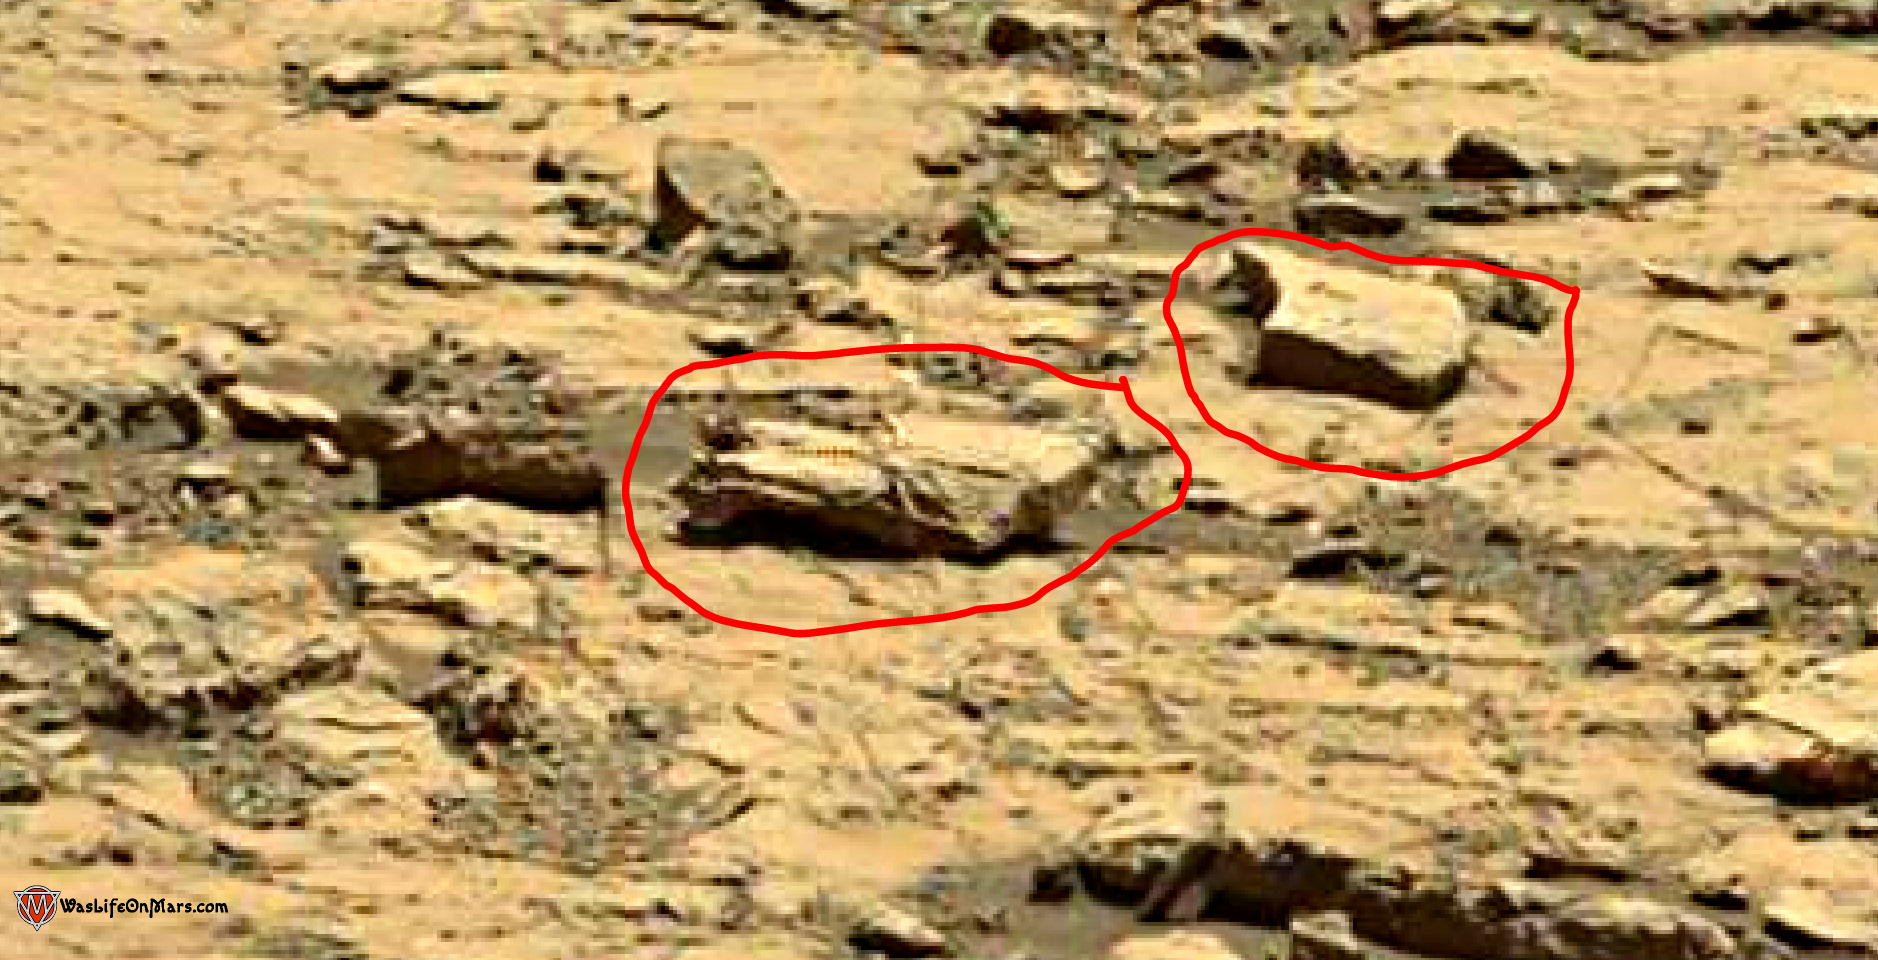 mars sol 1428 anomaly artifacts 1a - the spider - was life on mars